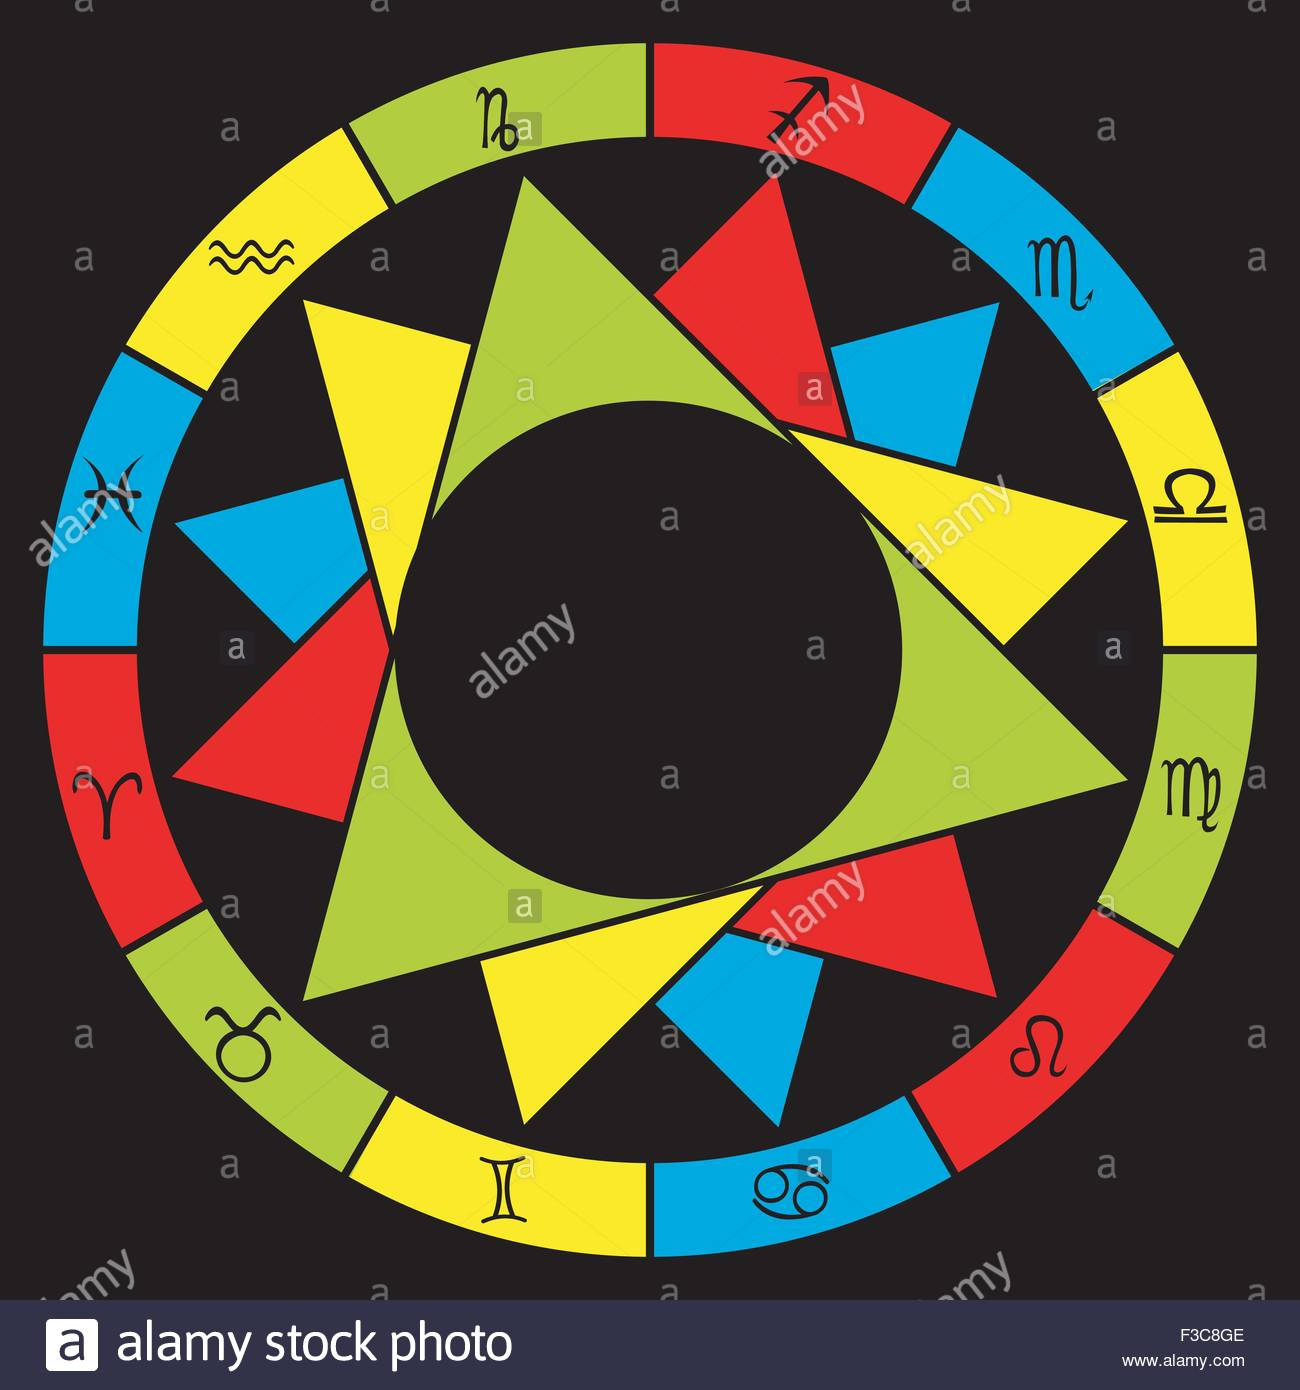 Astrology signs of the zodiac with houses and natal chart divided astrology signs of the zodiac with houses and natal chart divided into elements nvjuhfo Gallery